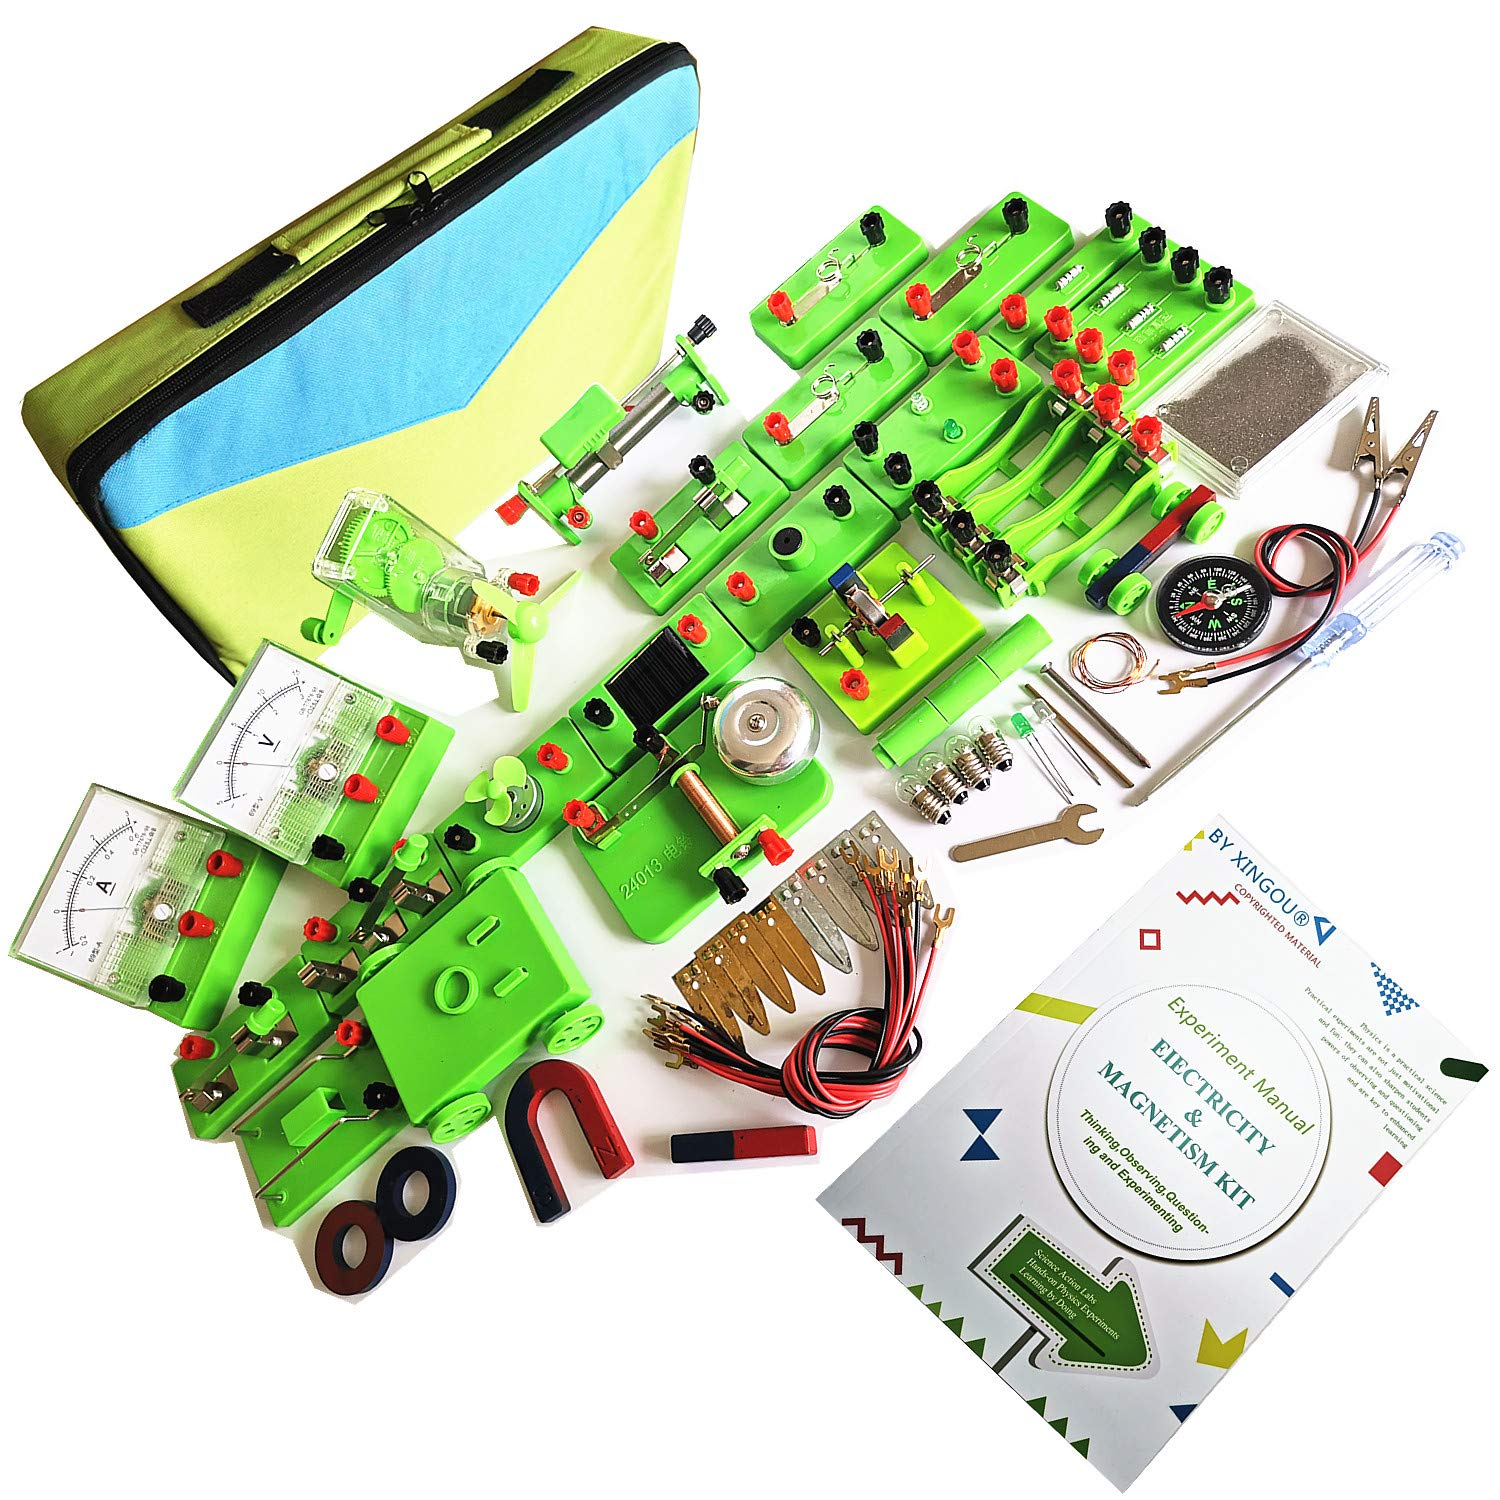 Circuit and Magnetic Science Exploration Kit - Exciting Stem Projects for Kids - Physics Lab Basic Electronics Magnetism Experiments Learning Toys